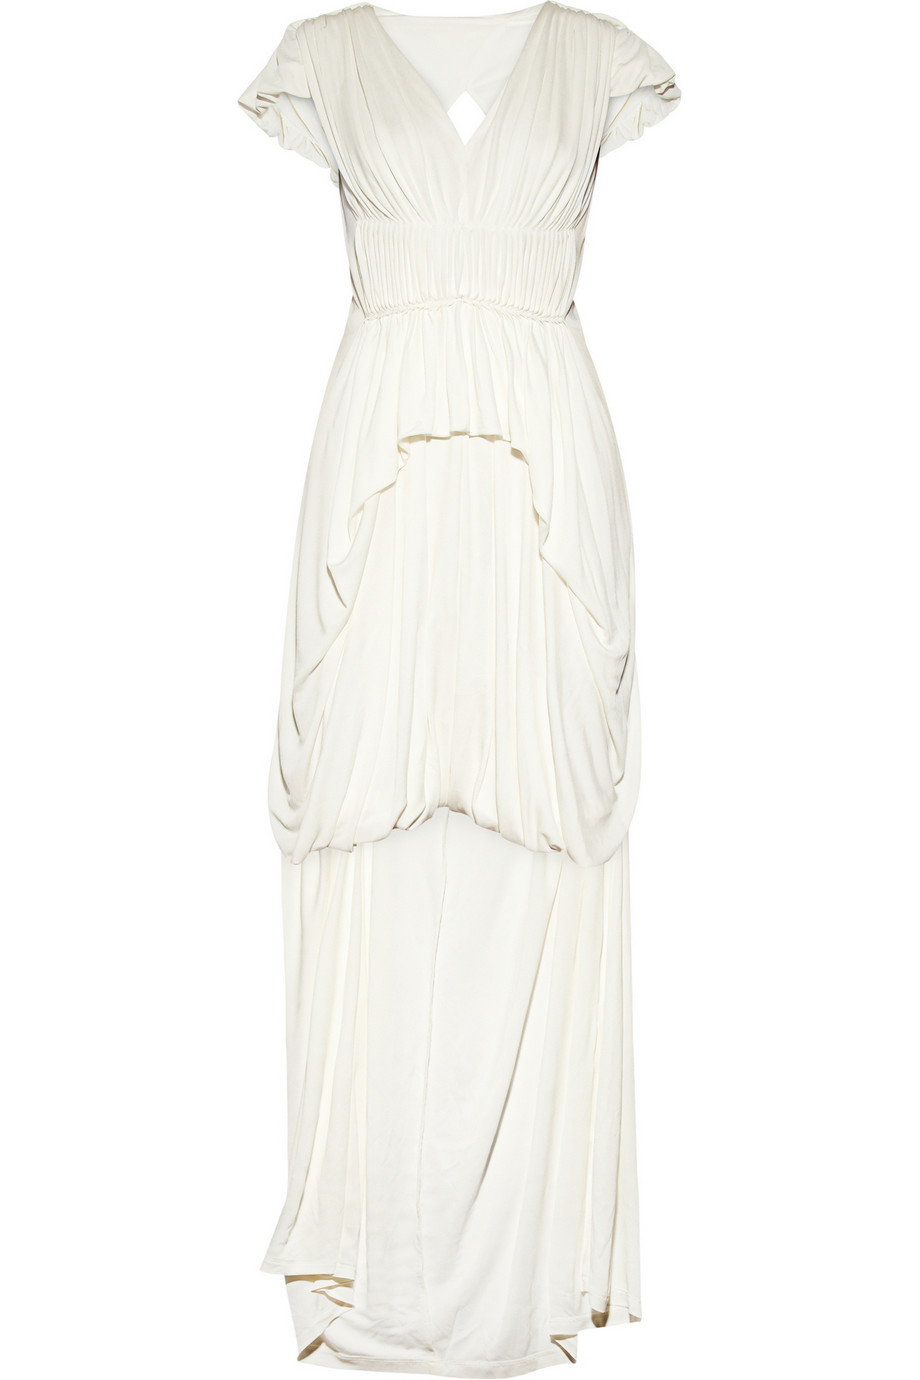 12 non-typical designer wedding dresses featuring Lanvin, Temperley ...